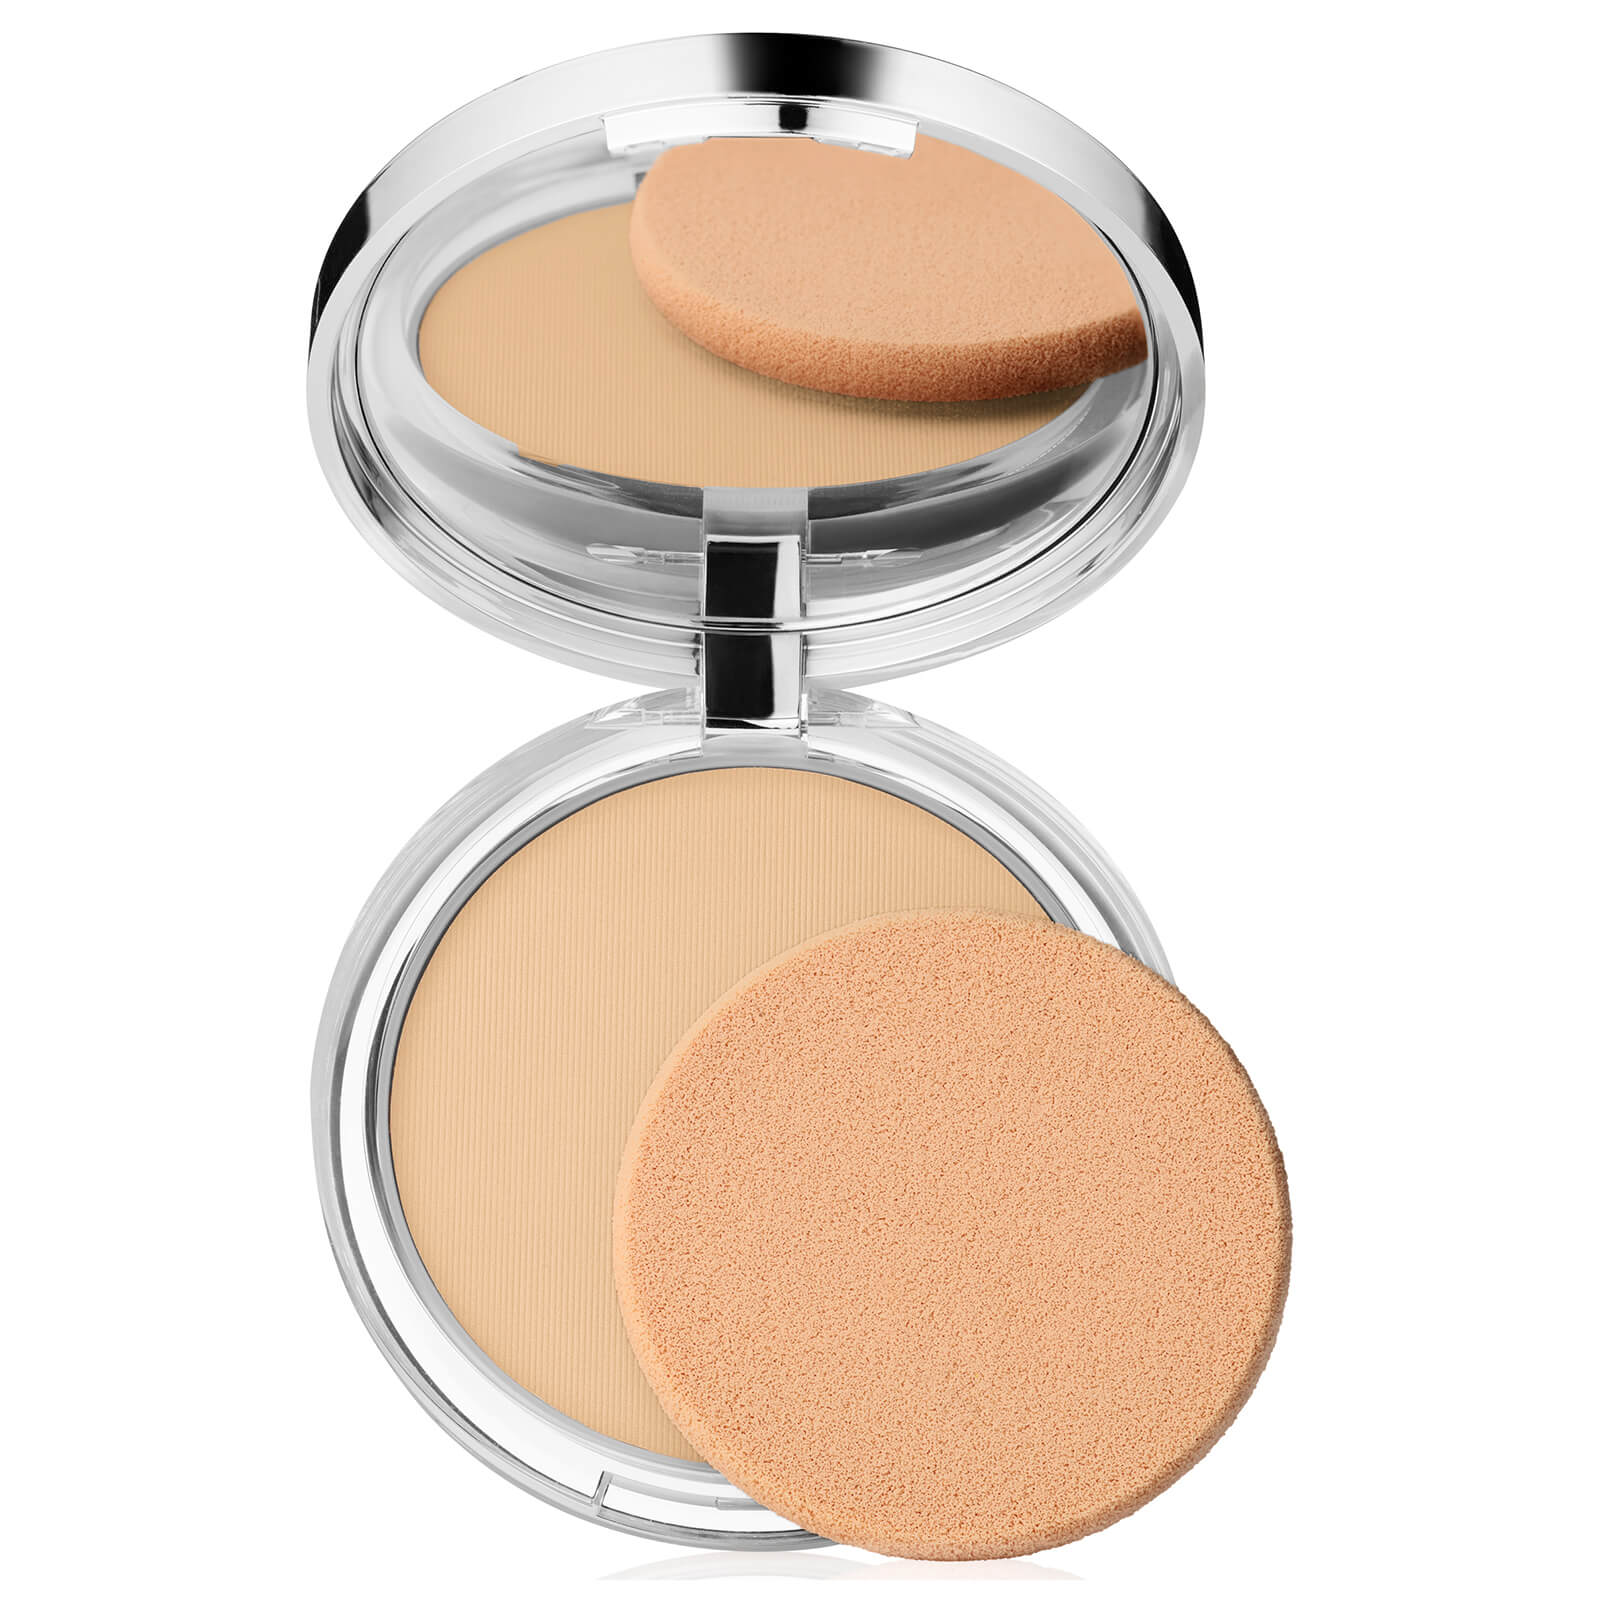 Clinique Stay-Matte Sheer Pressed Powder Oil-Free 7.6g (Various Shades) - Invisible Matte